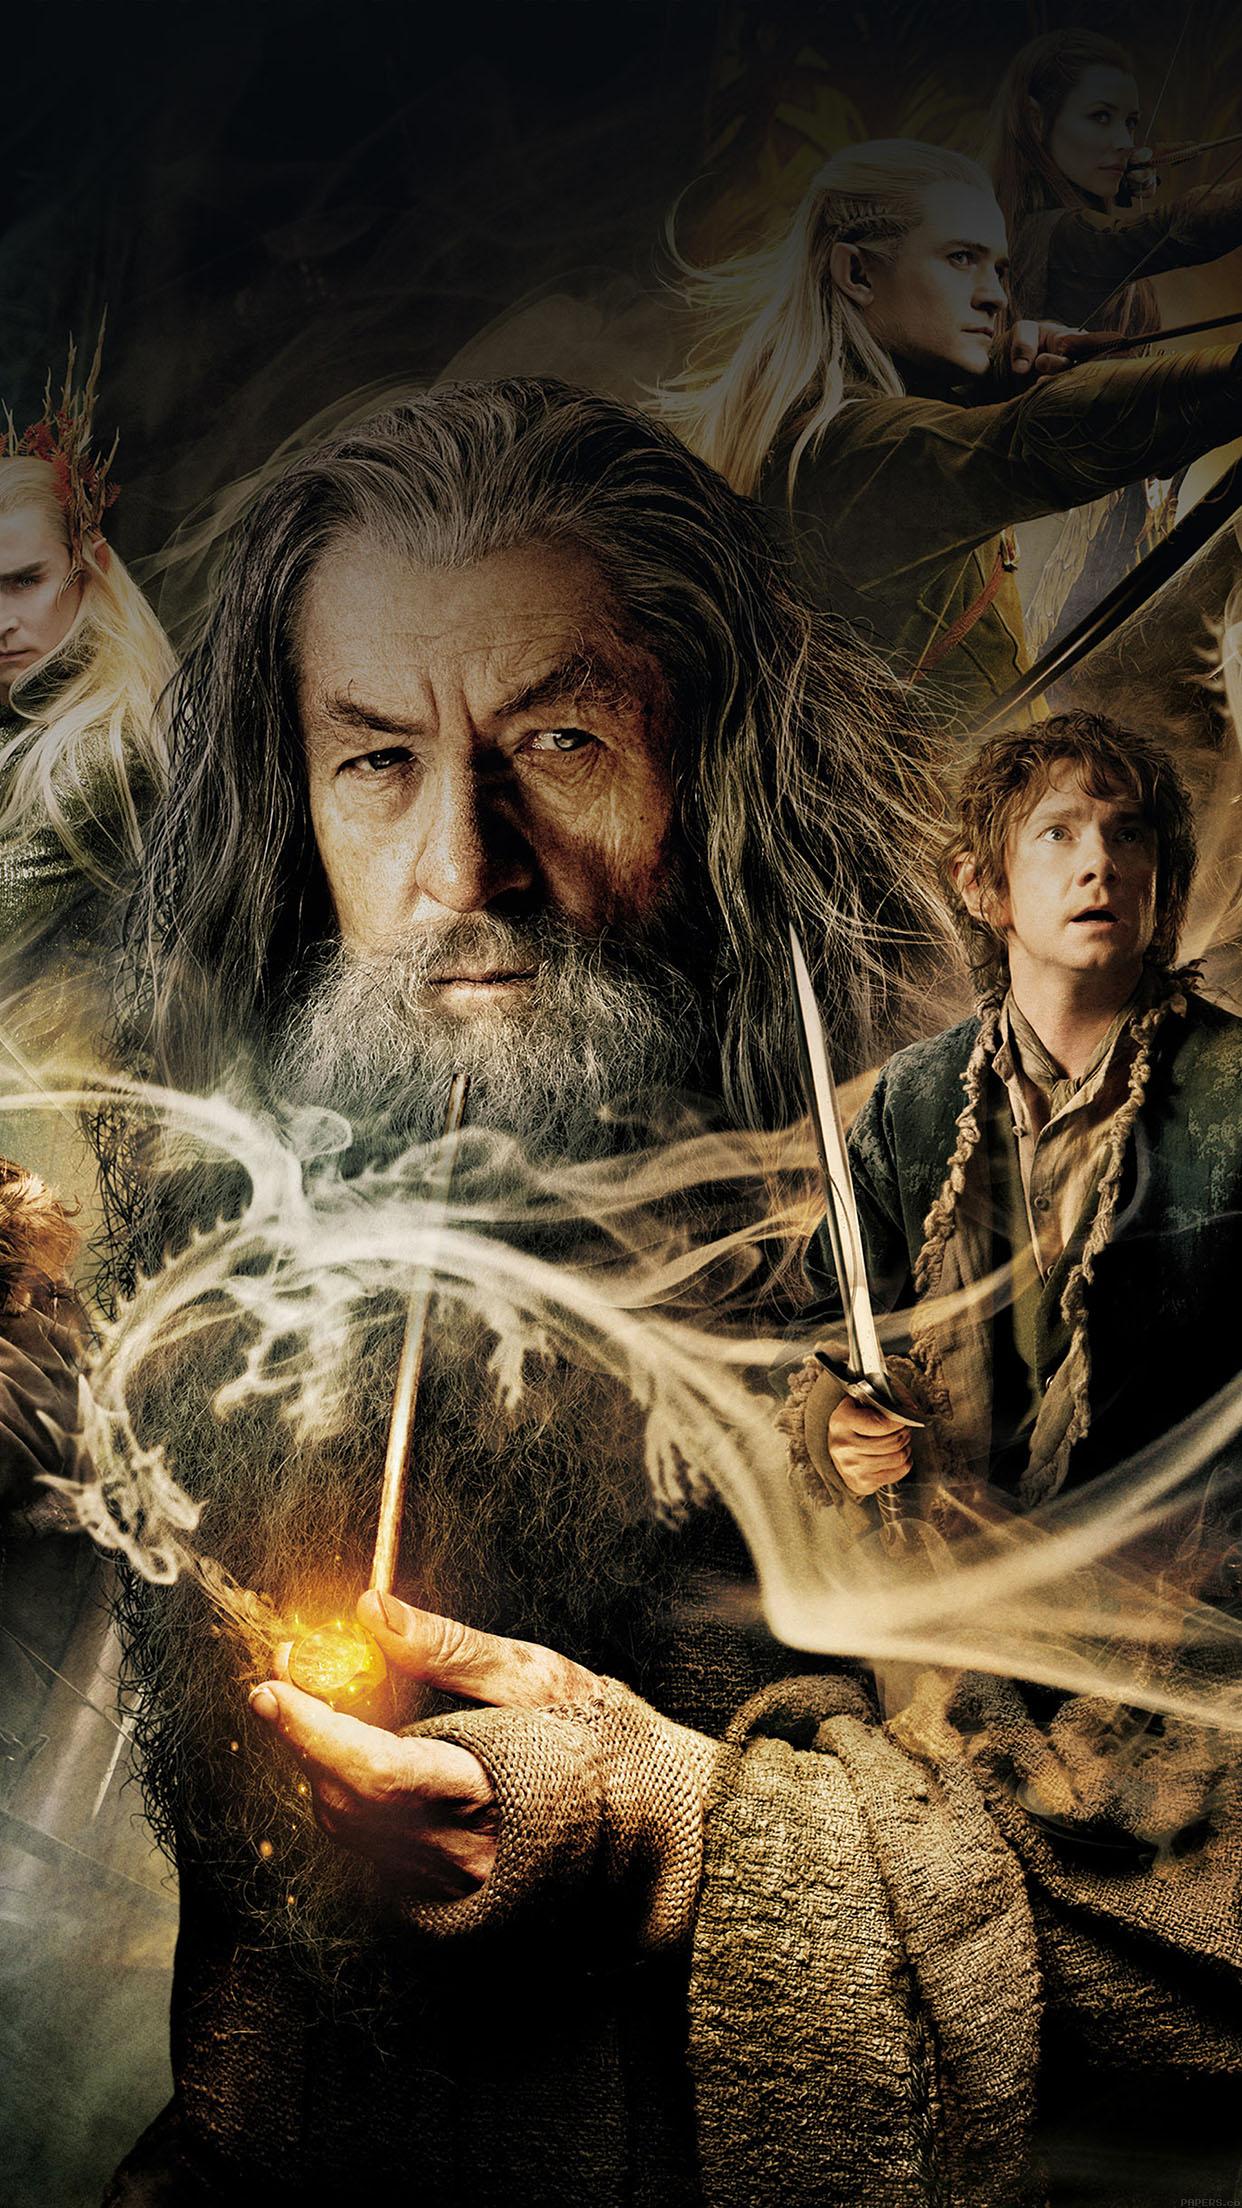 Ha48 Wallpaper Desolation Of Smaug Hobbit Film Face Papers Co